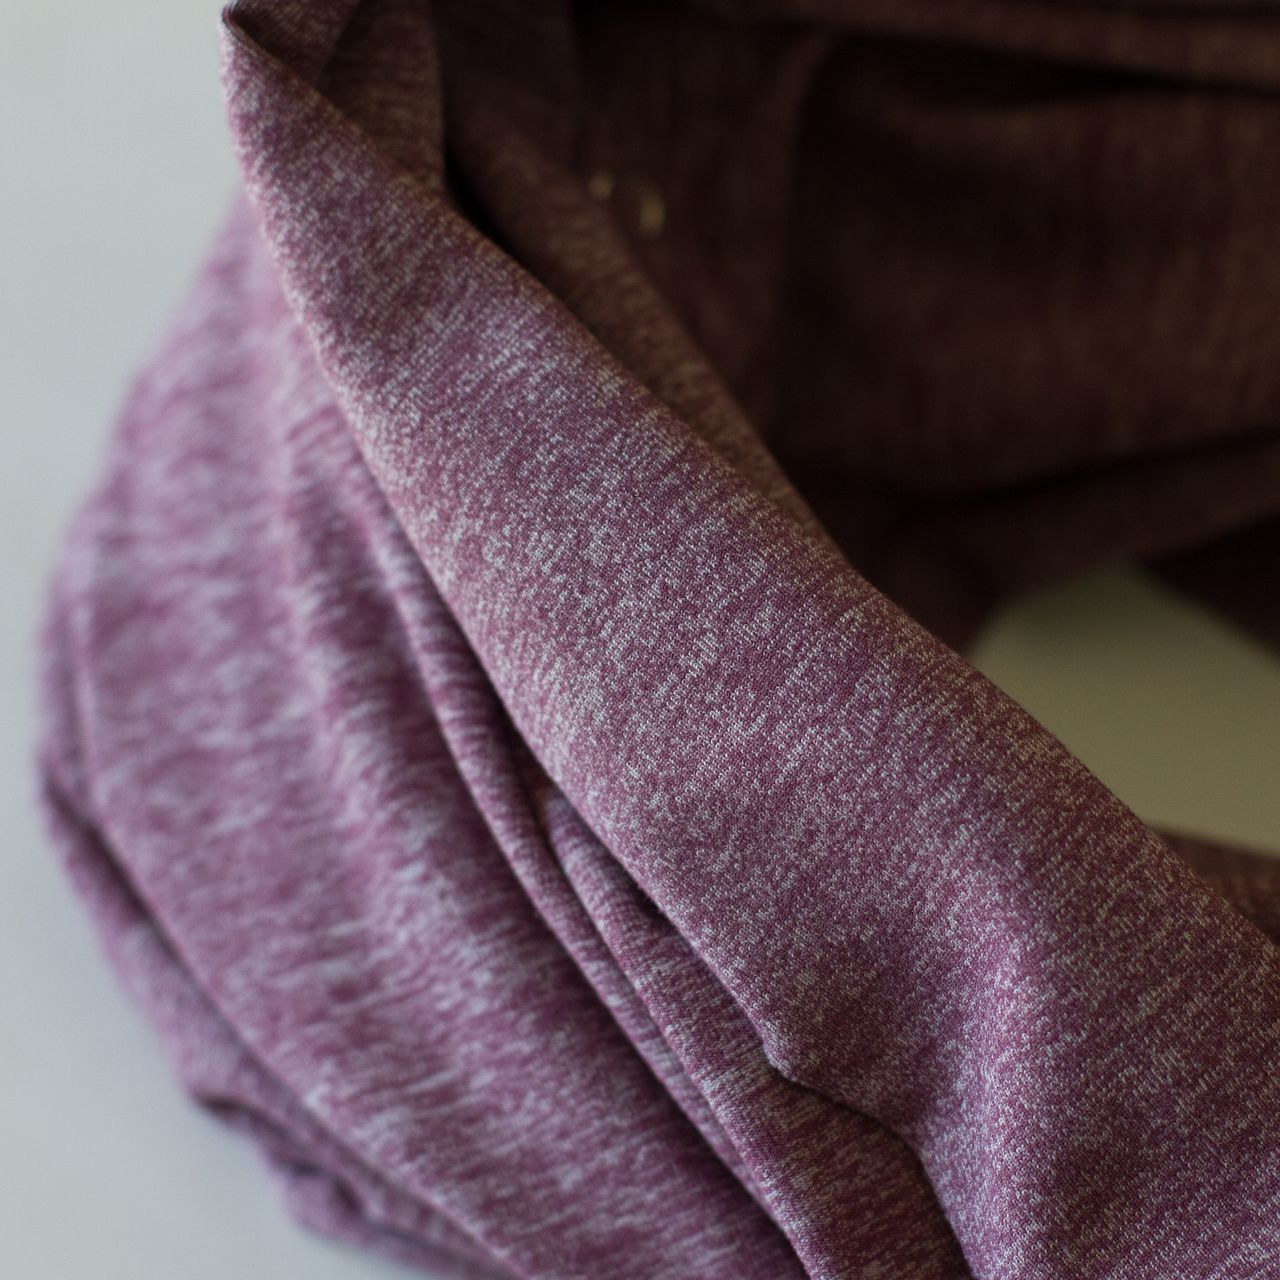 Lululemon Vinyasa Scarf - Heathered Muted Mauve